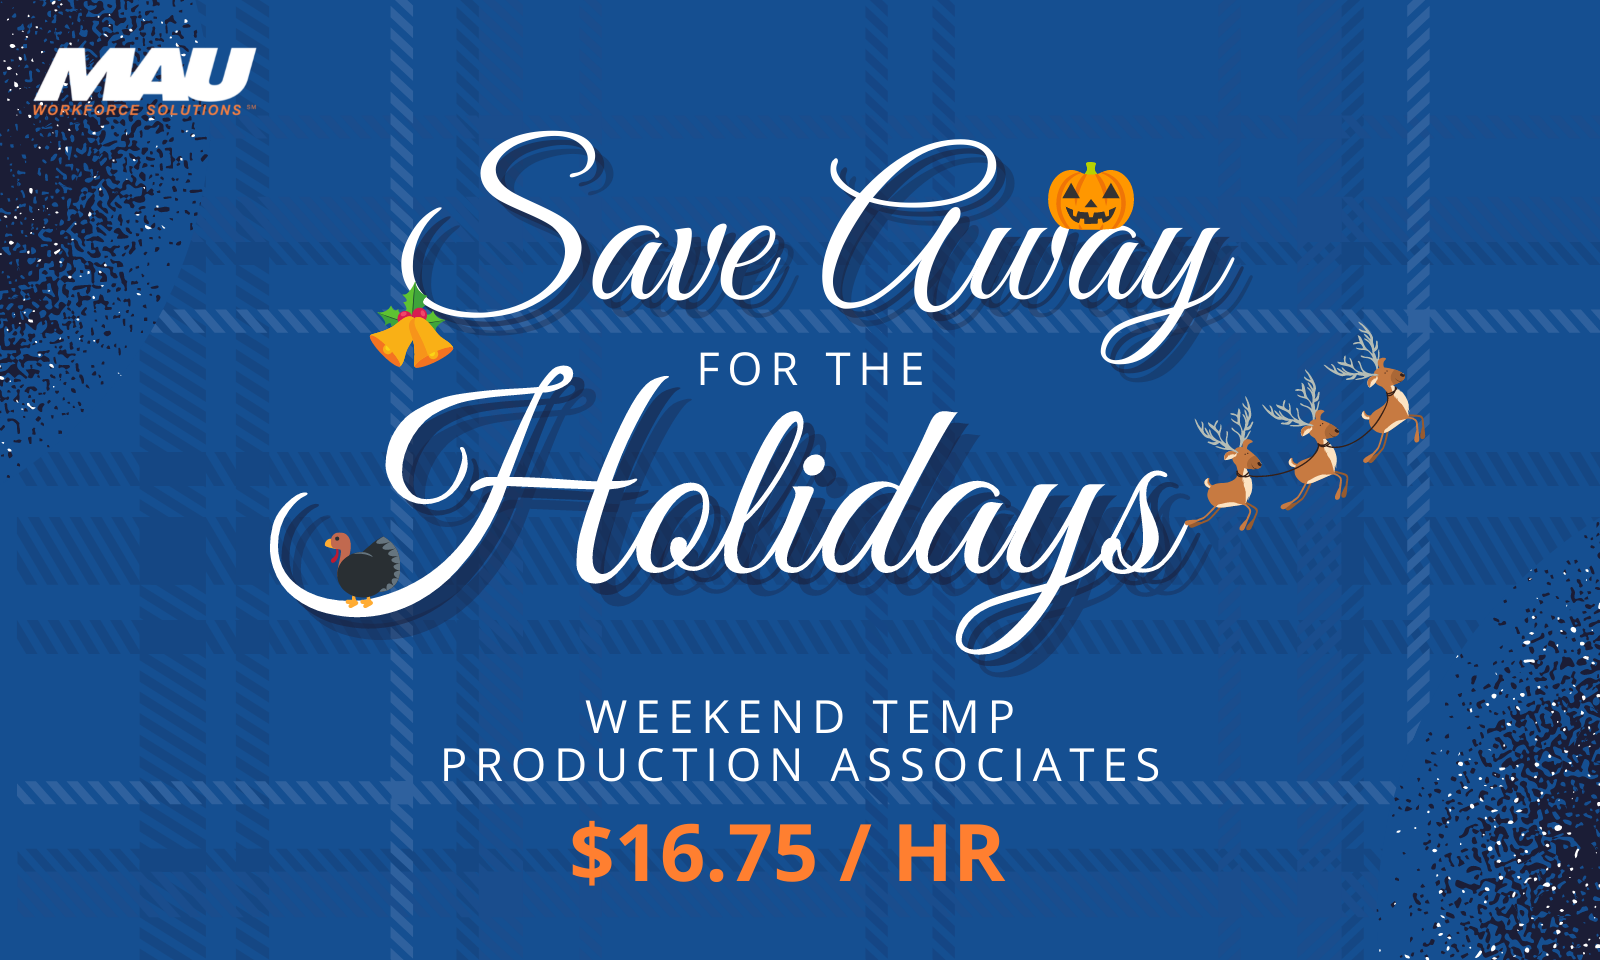 Save Away for the Holidays [Now Hiring Weekend Production Associates in Ladson, SC]